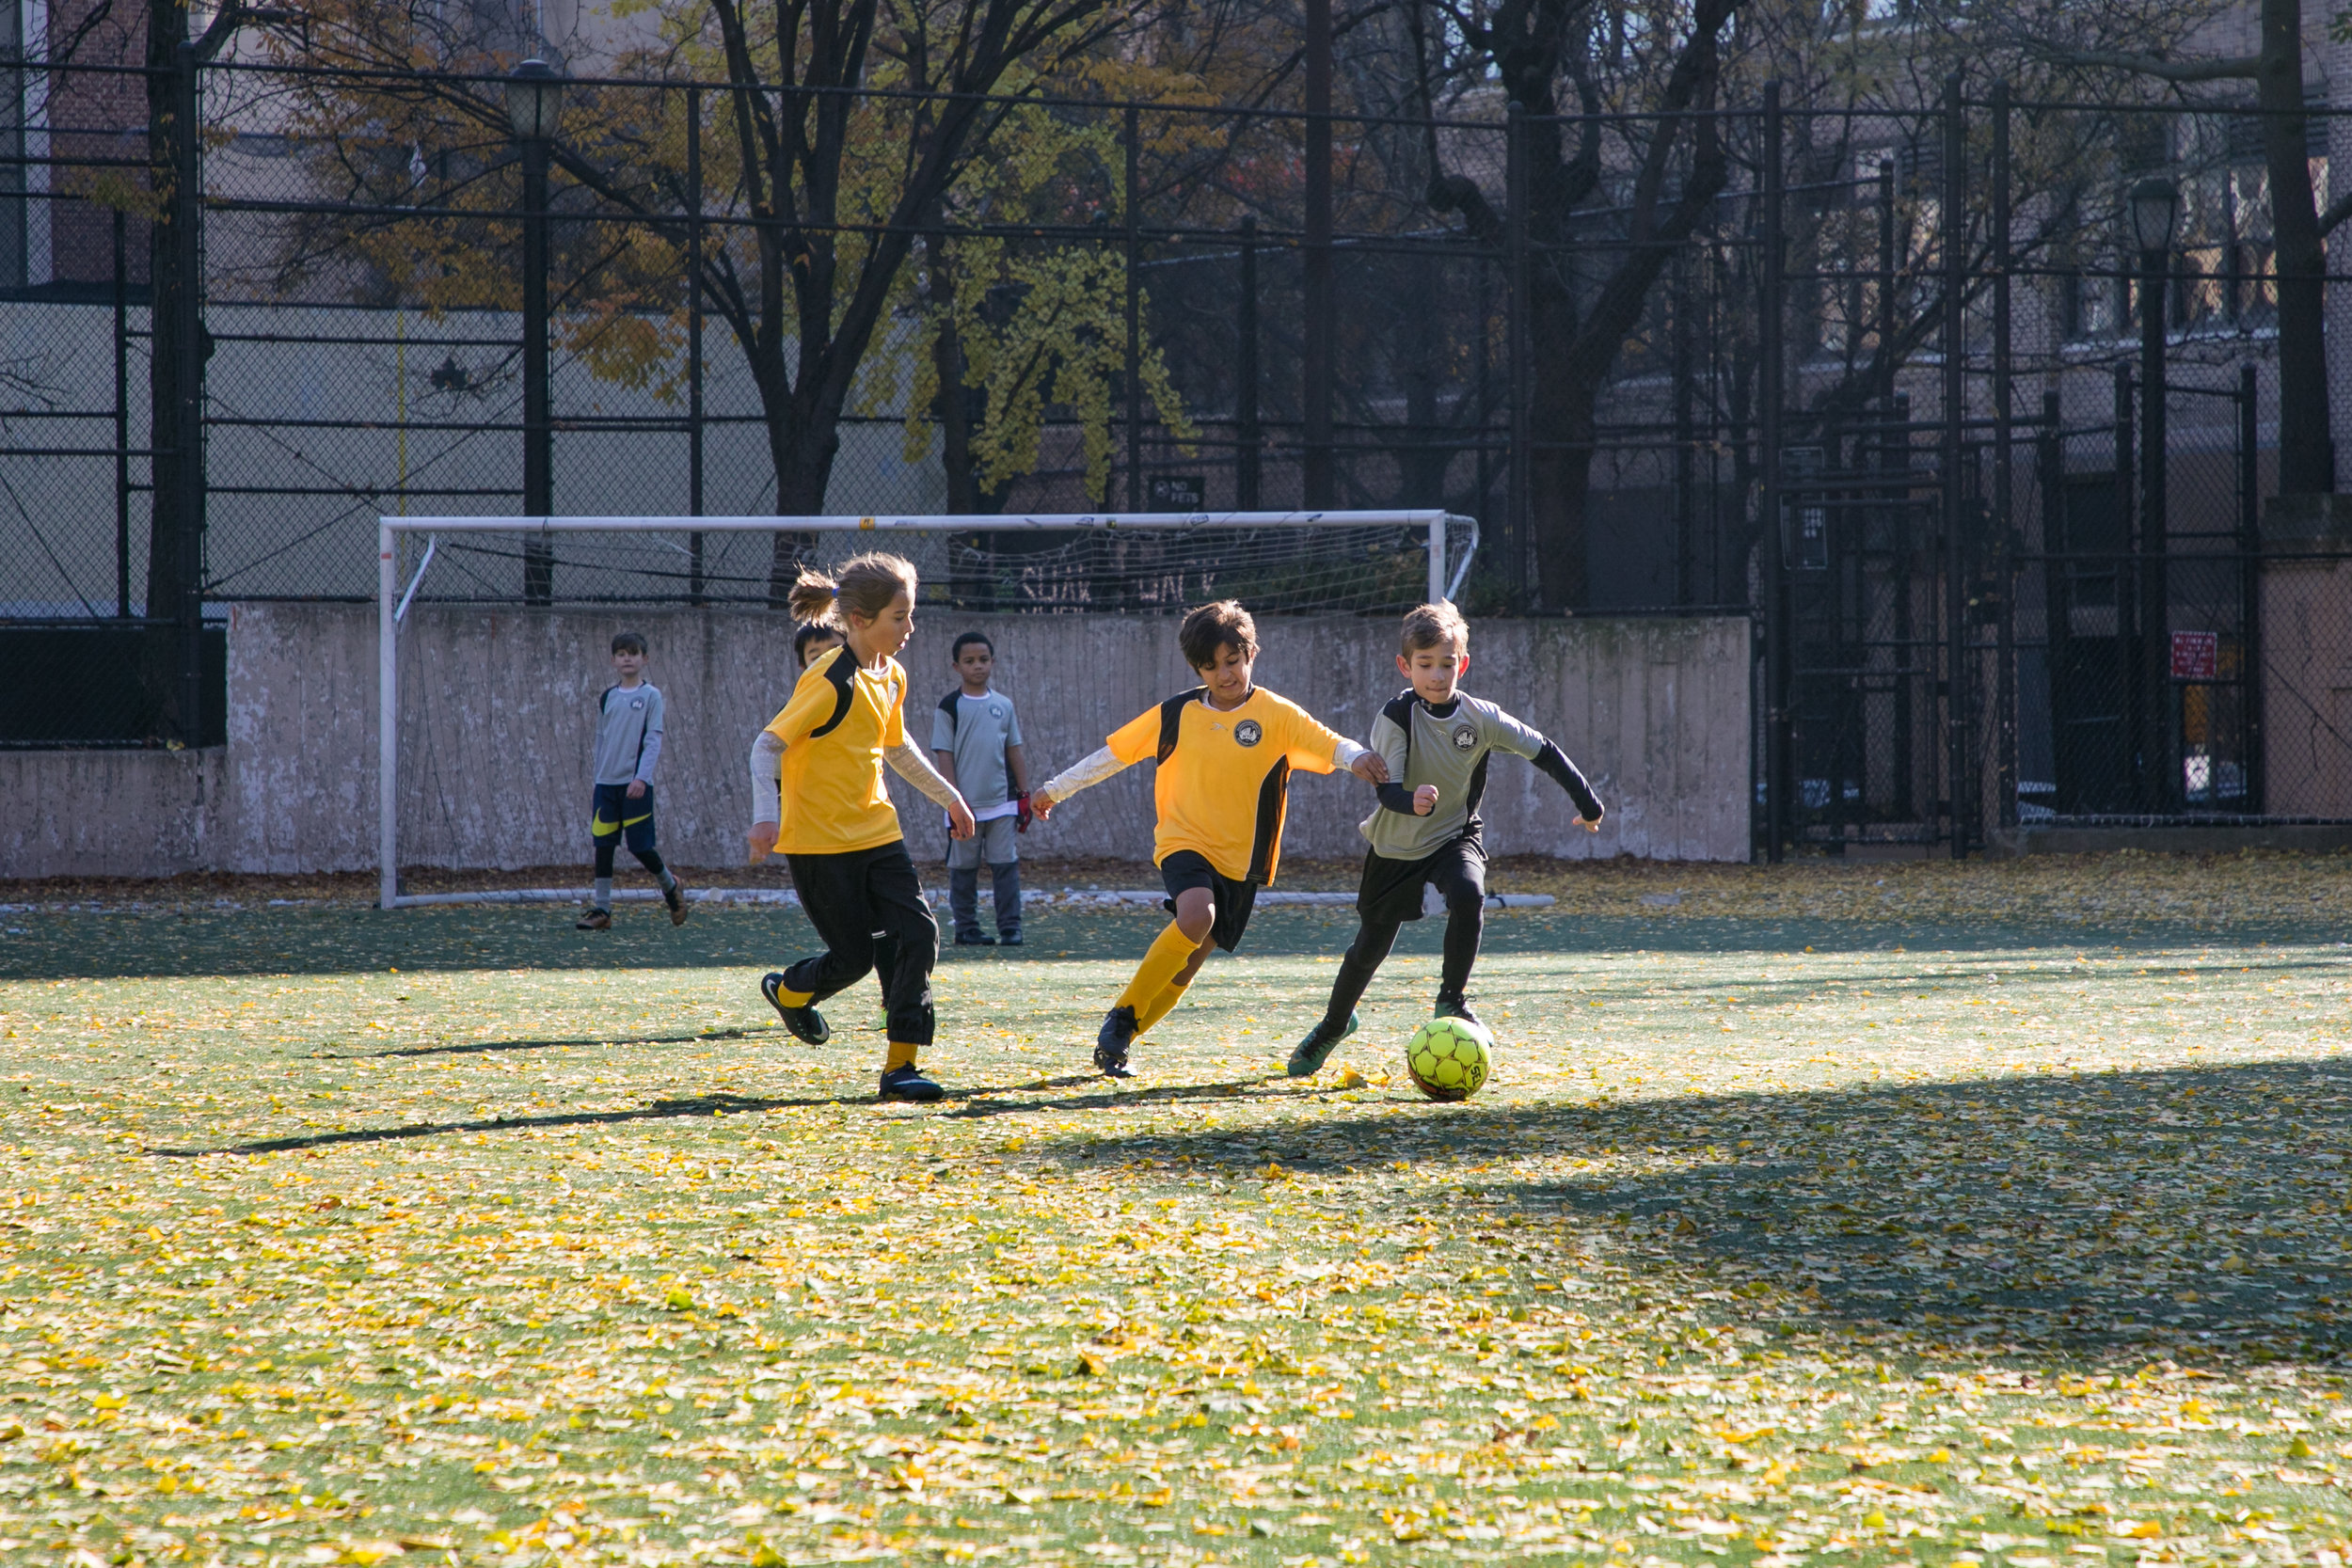 DUSC Recreation players fight for the ball, under the watchful eye of an older Travel player.